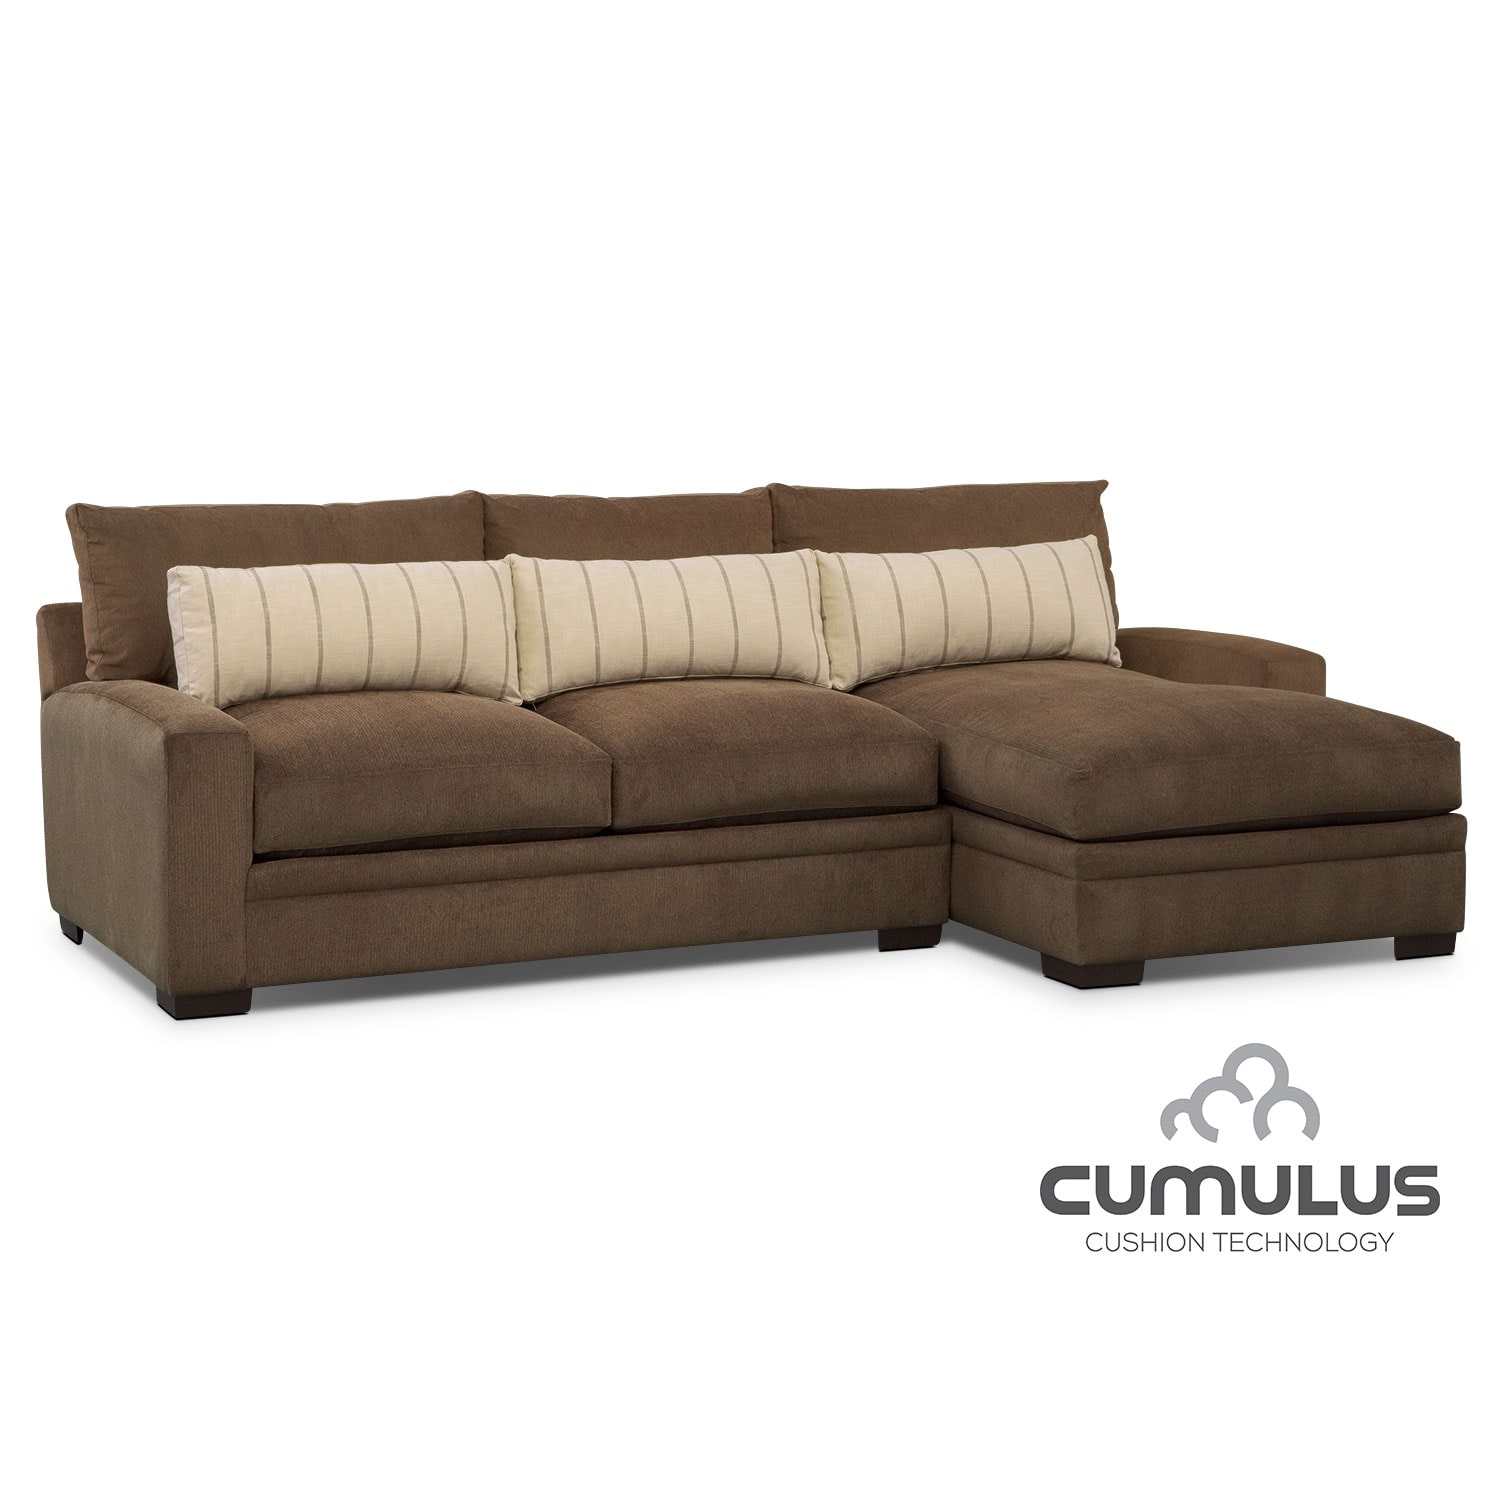 Ventura 2-Piece Sectional with Right-Facing Chaise - Brown